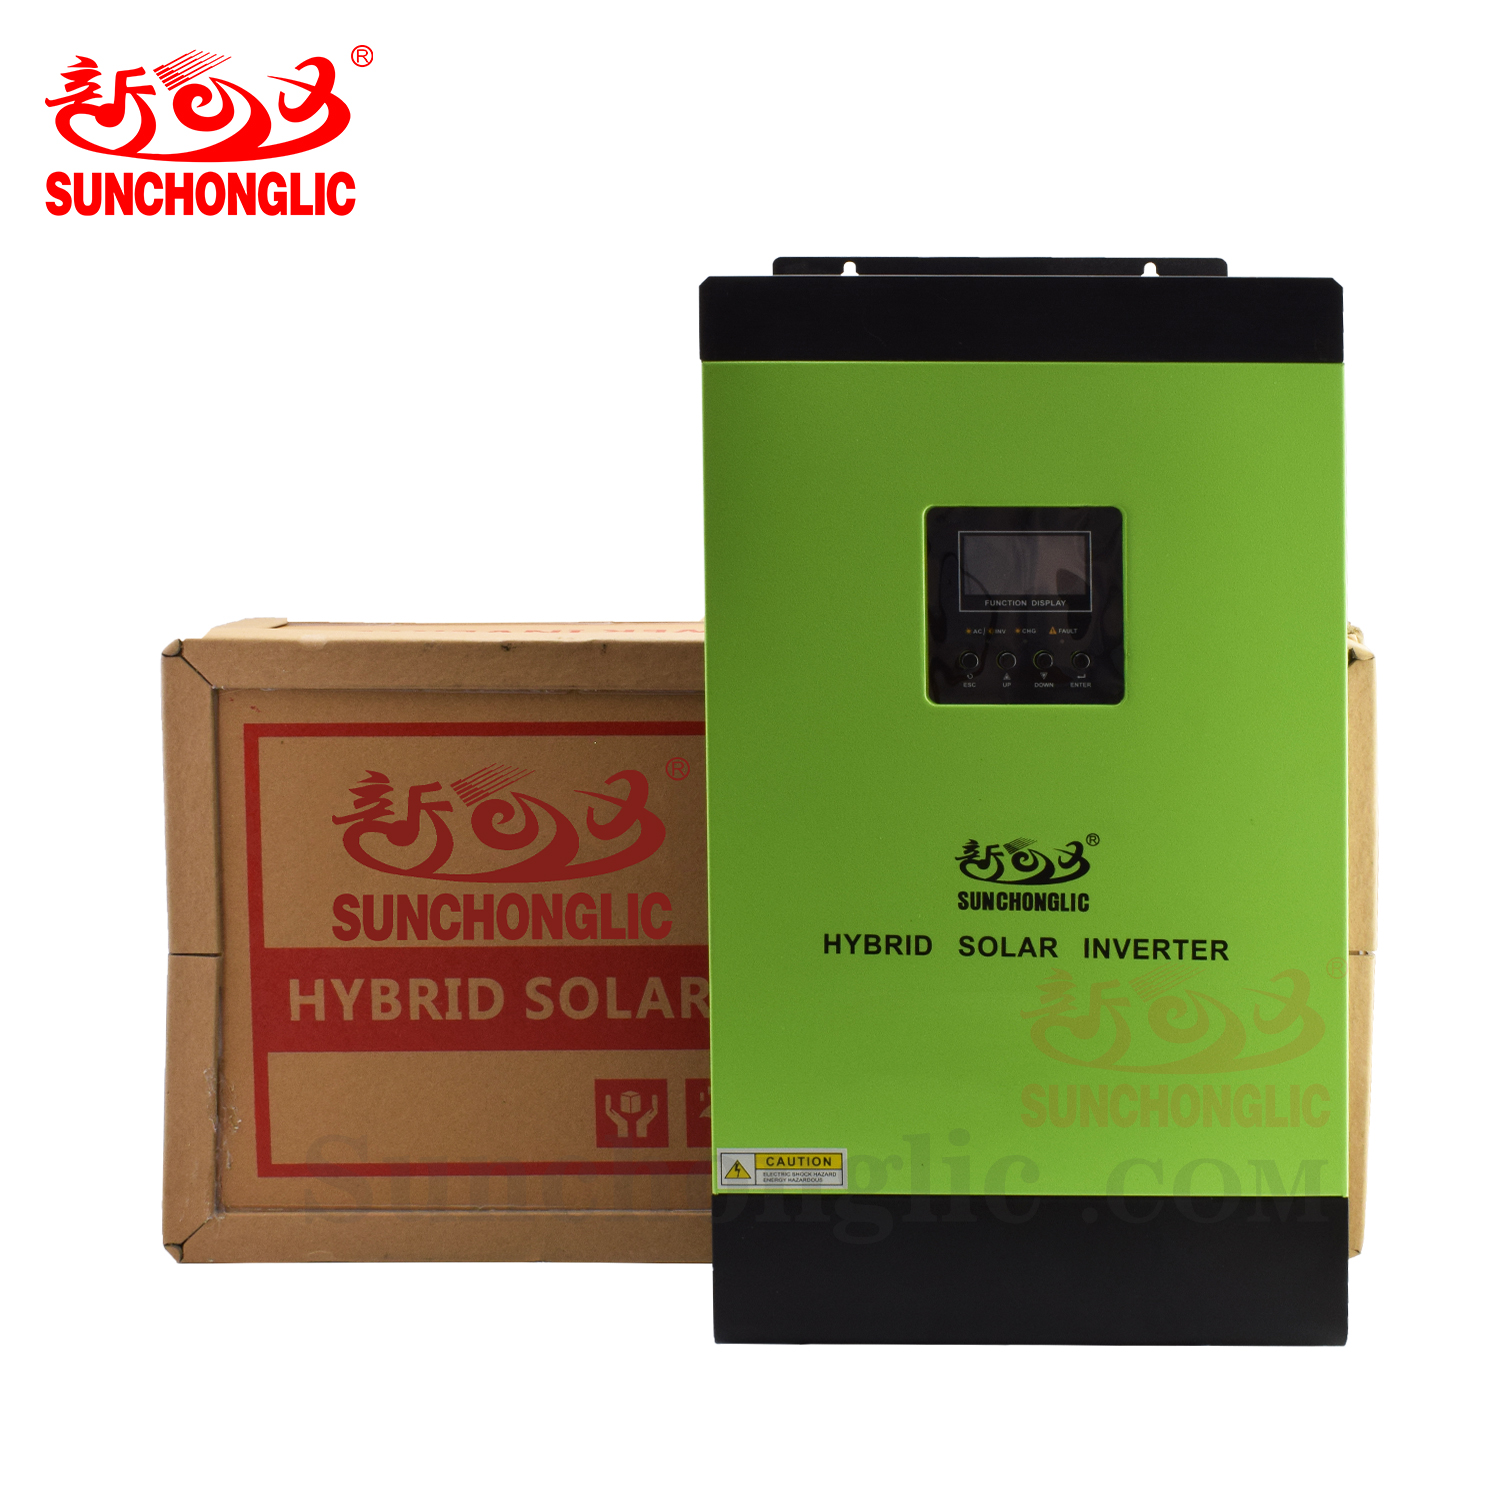 Sunchonglic high frequency 48v 5kva pure sine wave mppt hybrid solar inverter